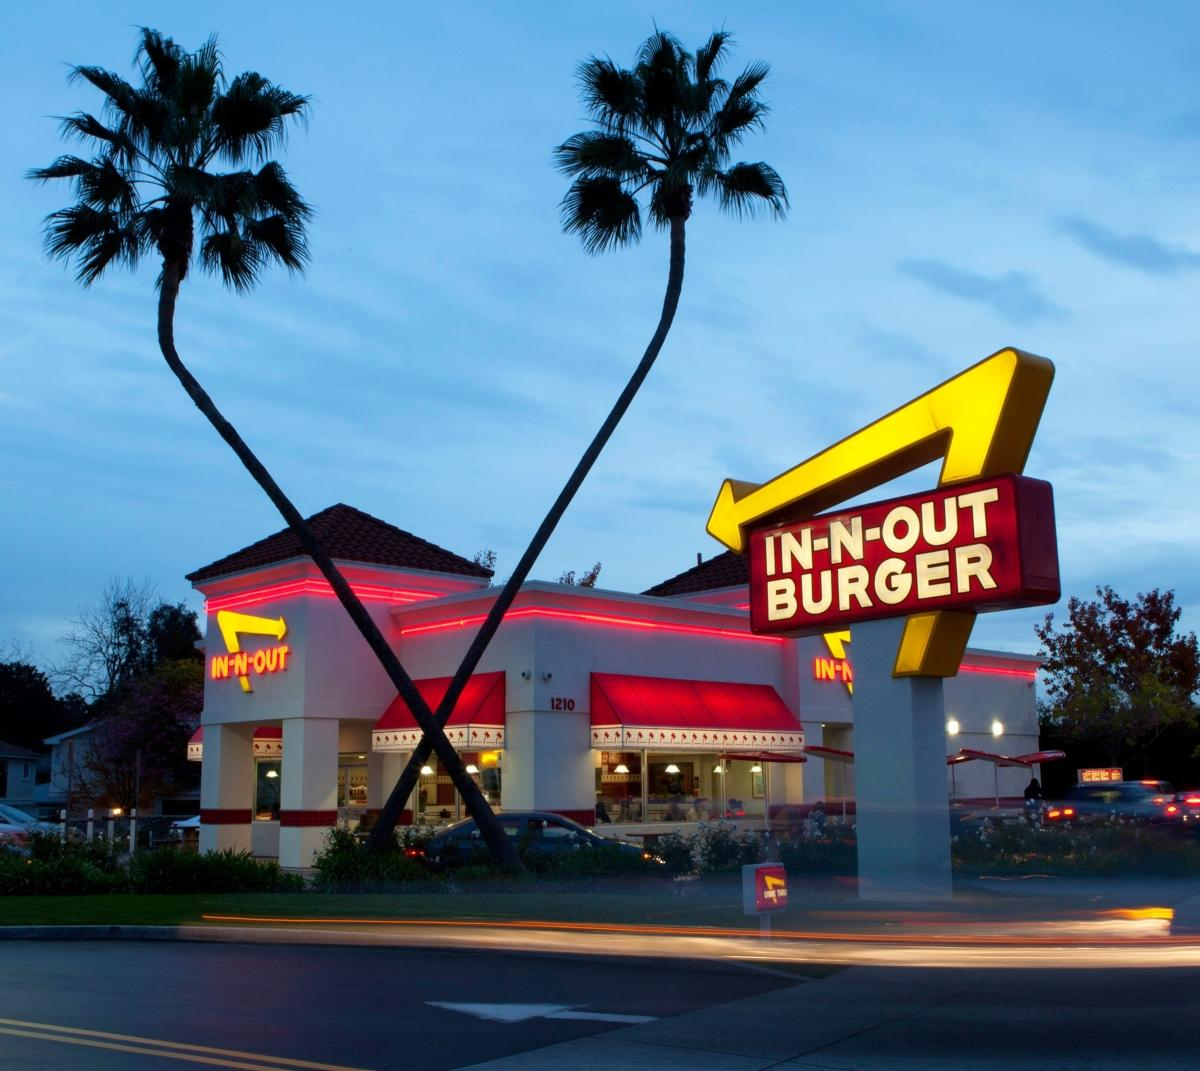 In-N-Out Burger a restaurant